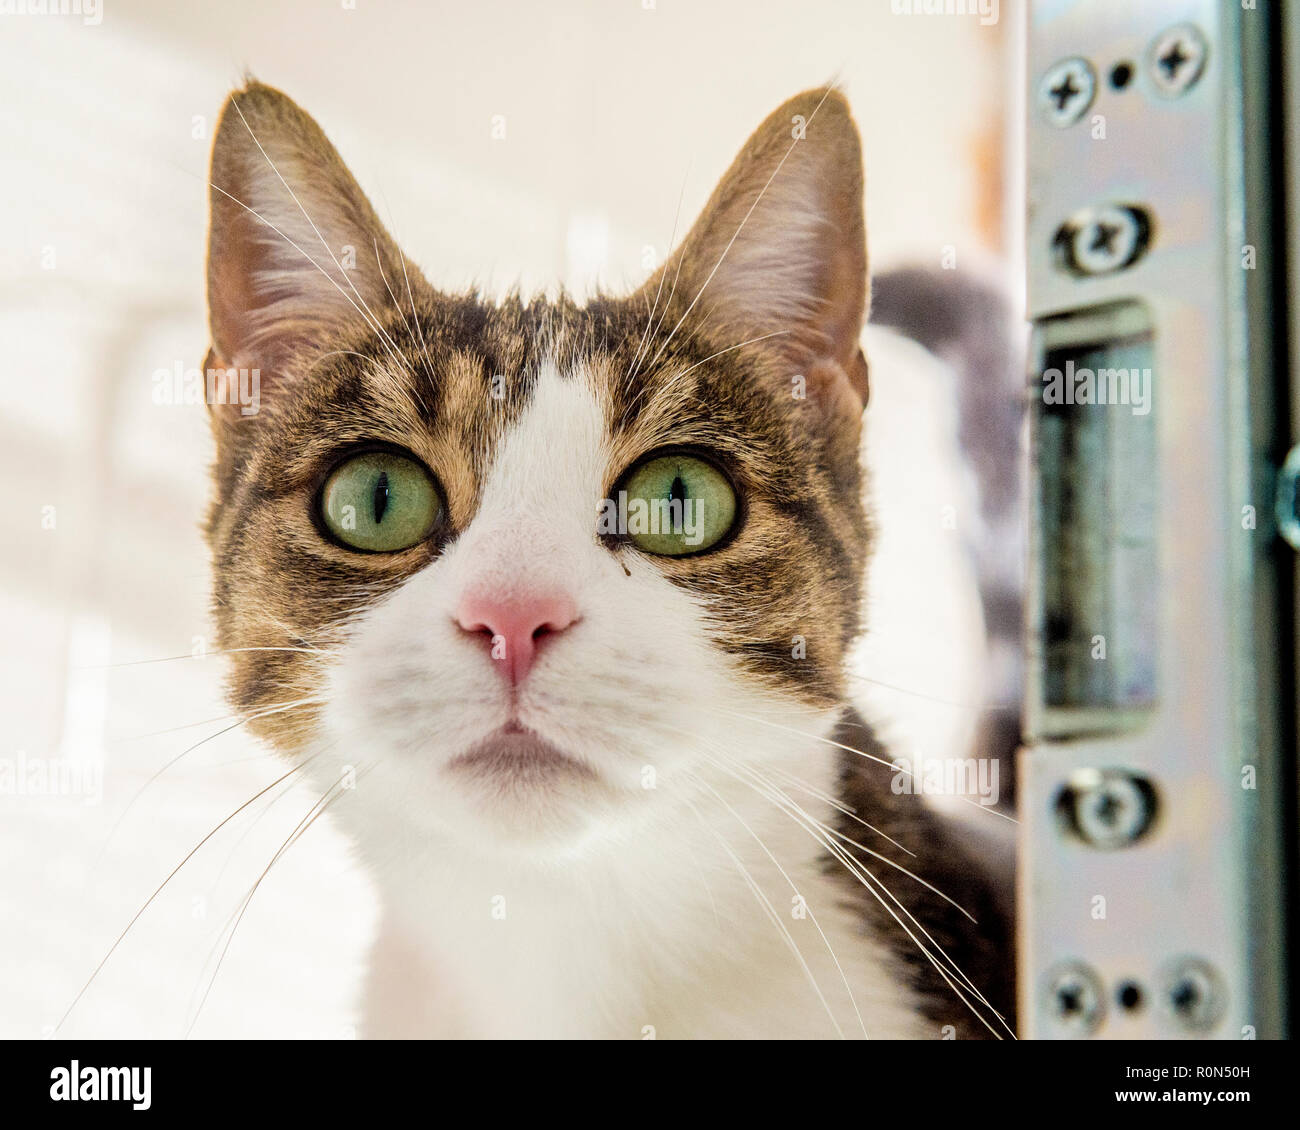 tabby and white cat Stock Photo